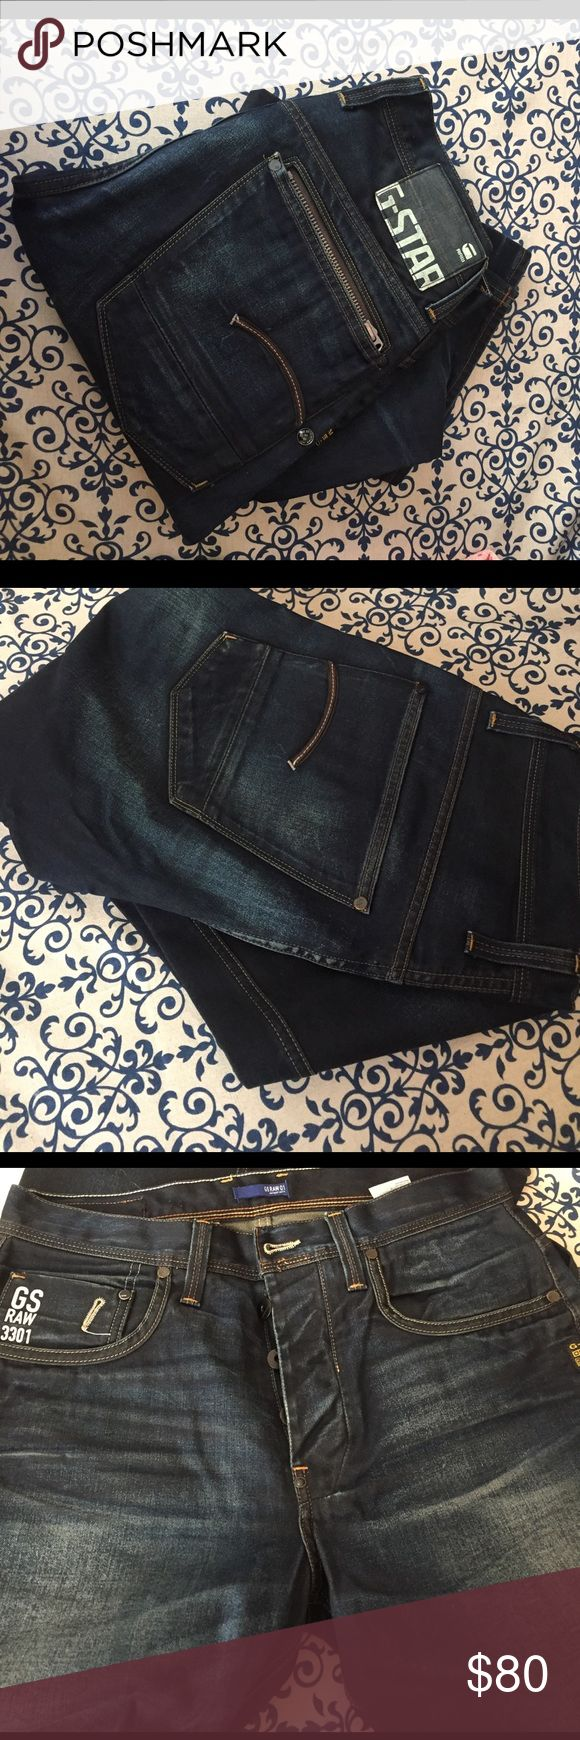 G-star raw jeans 32/34 Great condition. Too tight for my bf so only worn twice. Paid $180 new G-Star Jeans Slim Straight